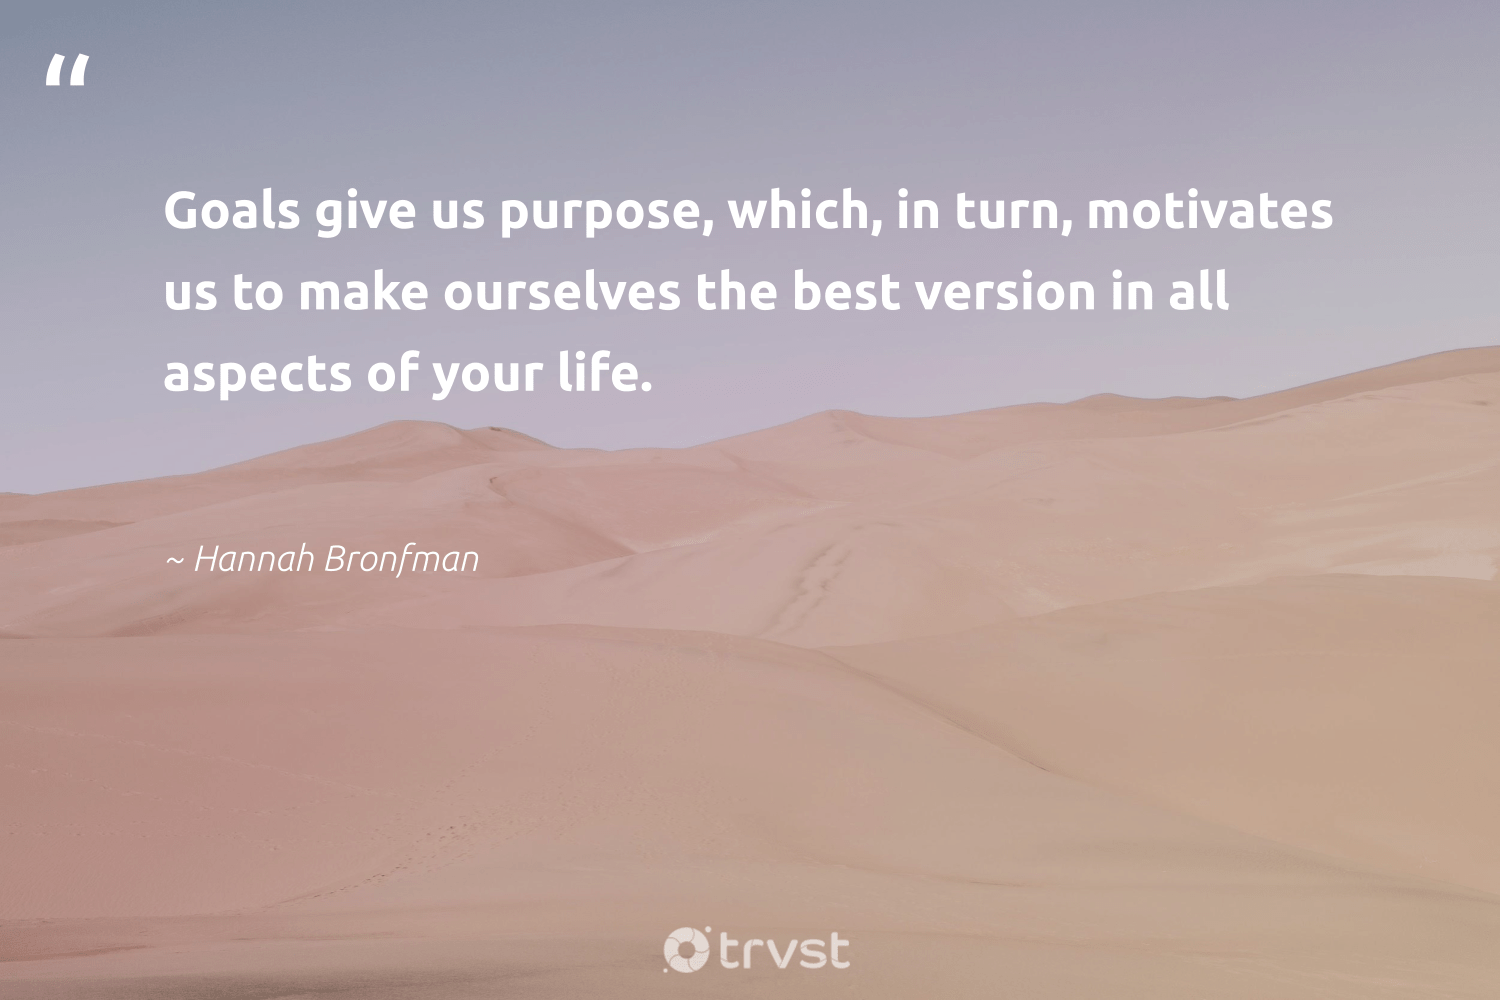 """""""Goals give us purpose, which, in turn, motivates us to make ourselves the best version in all aspects of your life.""""  - Hannah Bronfman #trvst #quotes #mindset #goals #purpose #meditation #begreat #dotherightthing #meditate #changemakers #health #bethechange"""